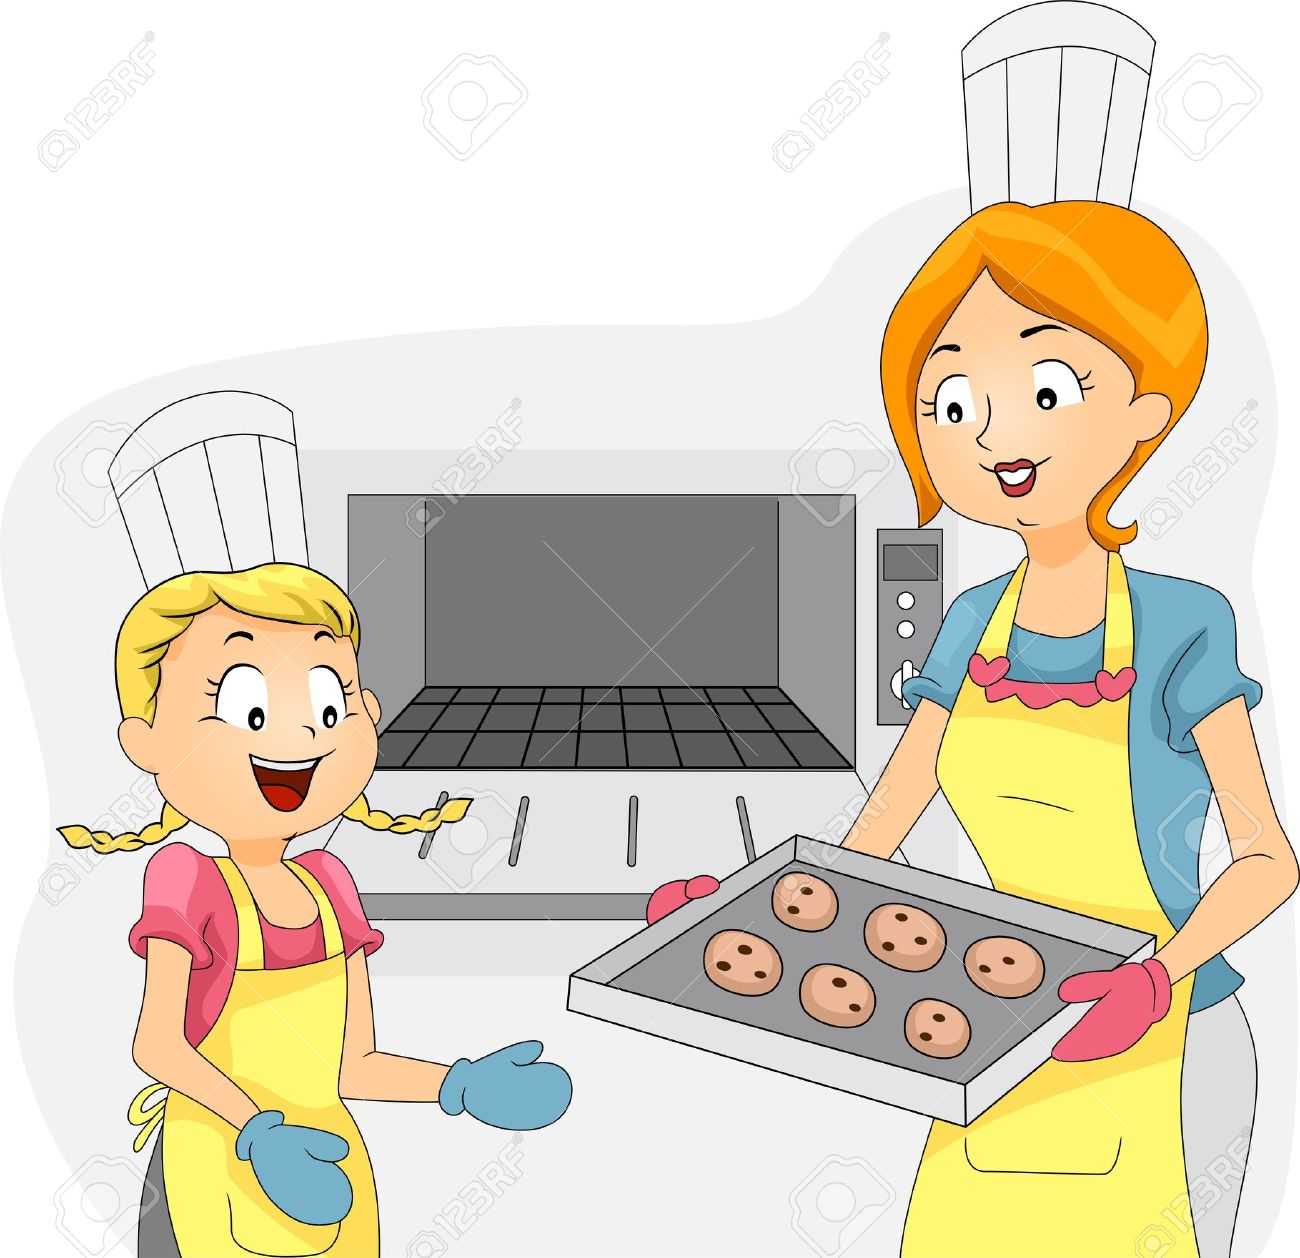 Illustration of a Kid Helping Out with the Baking Stock Photo - 10823969